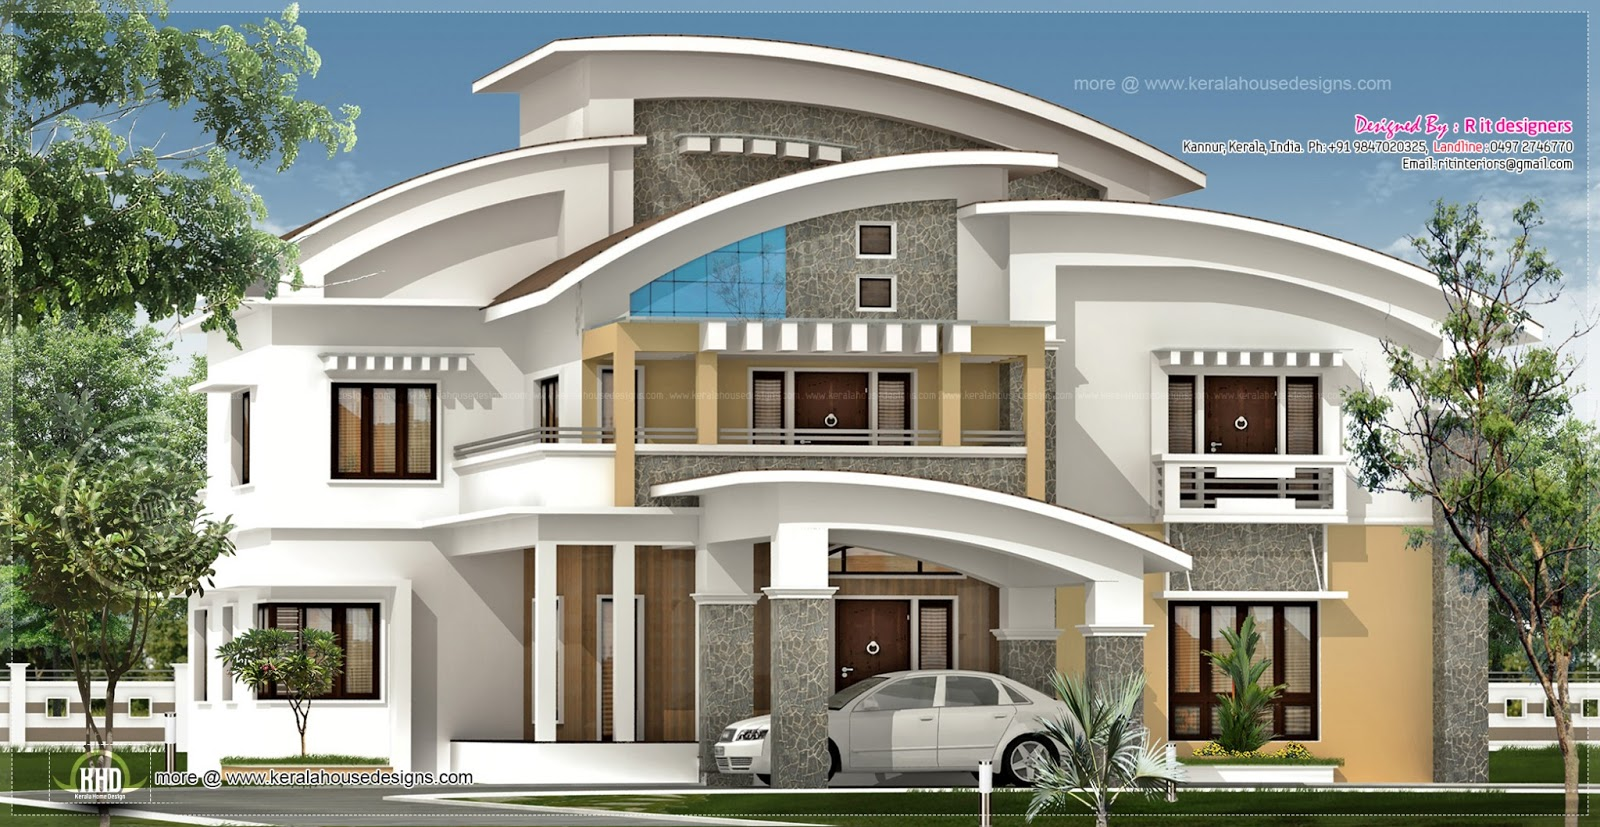 Remarkable Luxury Homes House Plans 1600 x 827 · 351 kB · jpeg